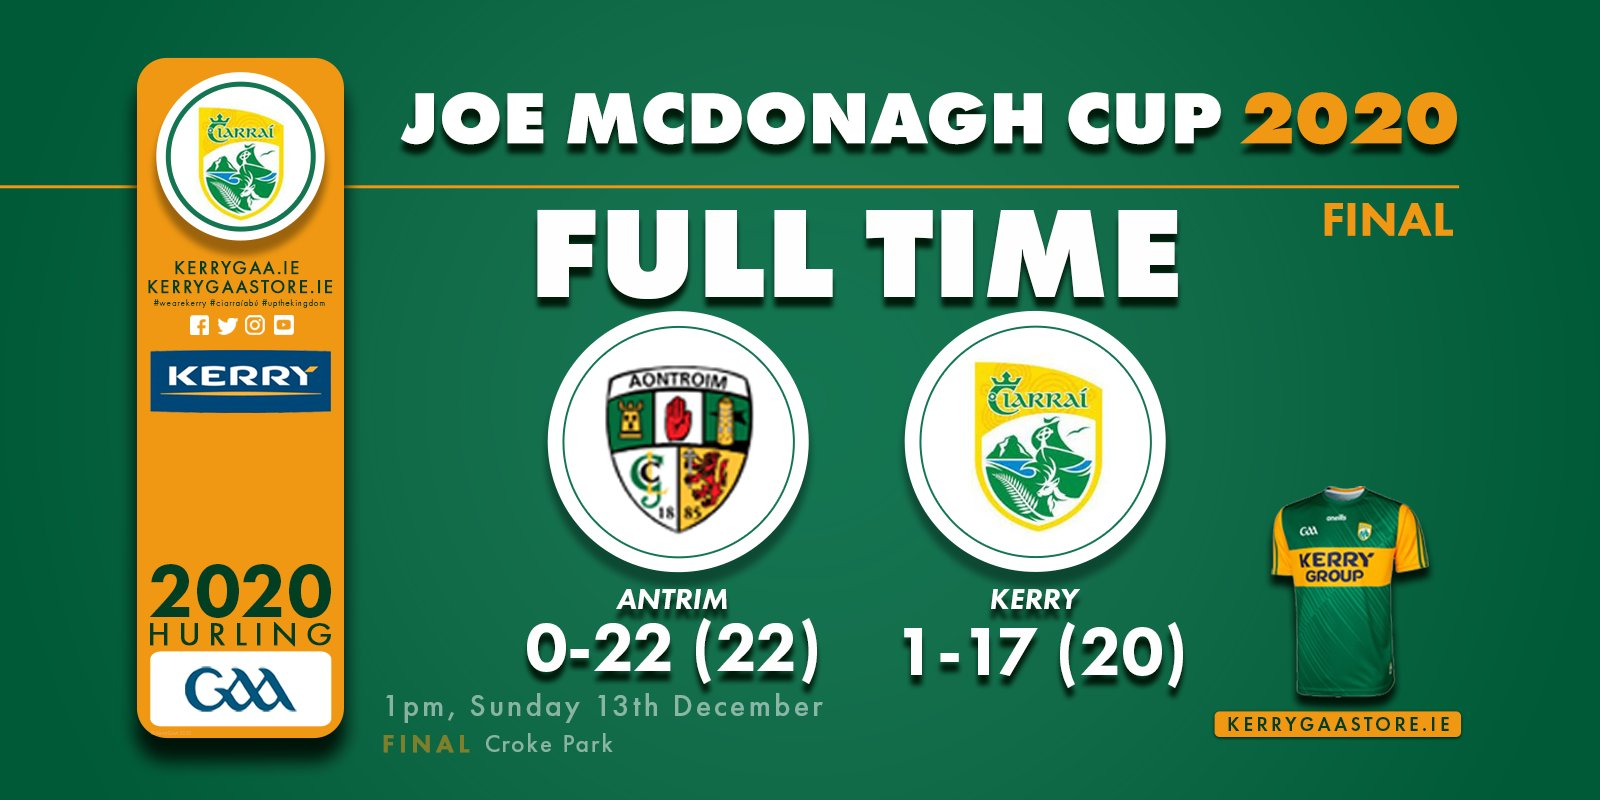 A win for Antrim in the Joe McDonagh Cup Final